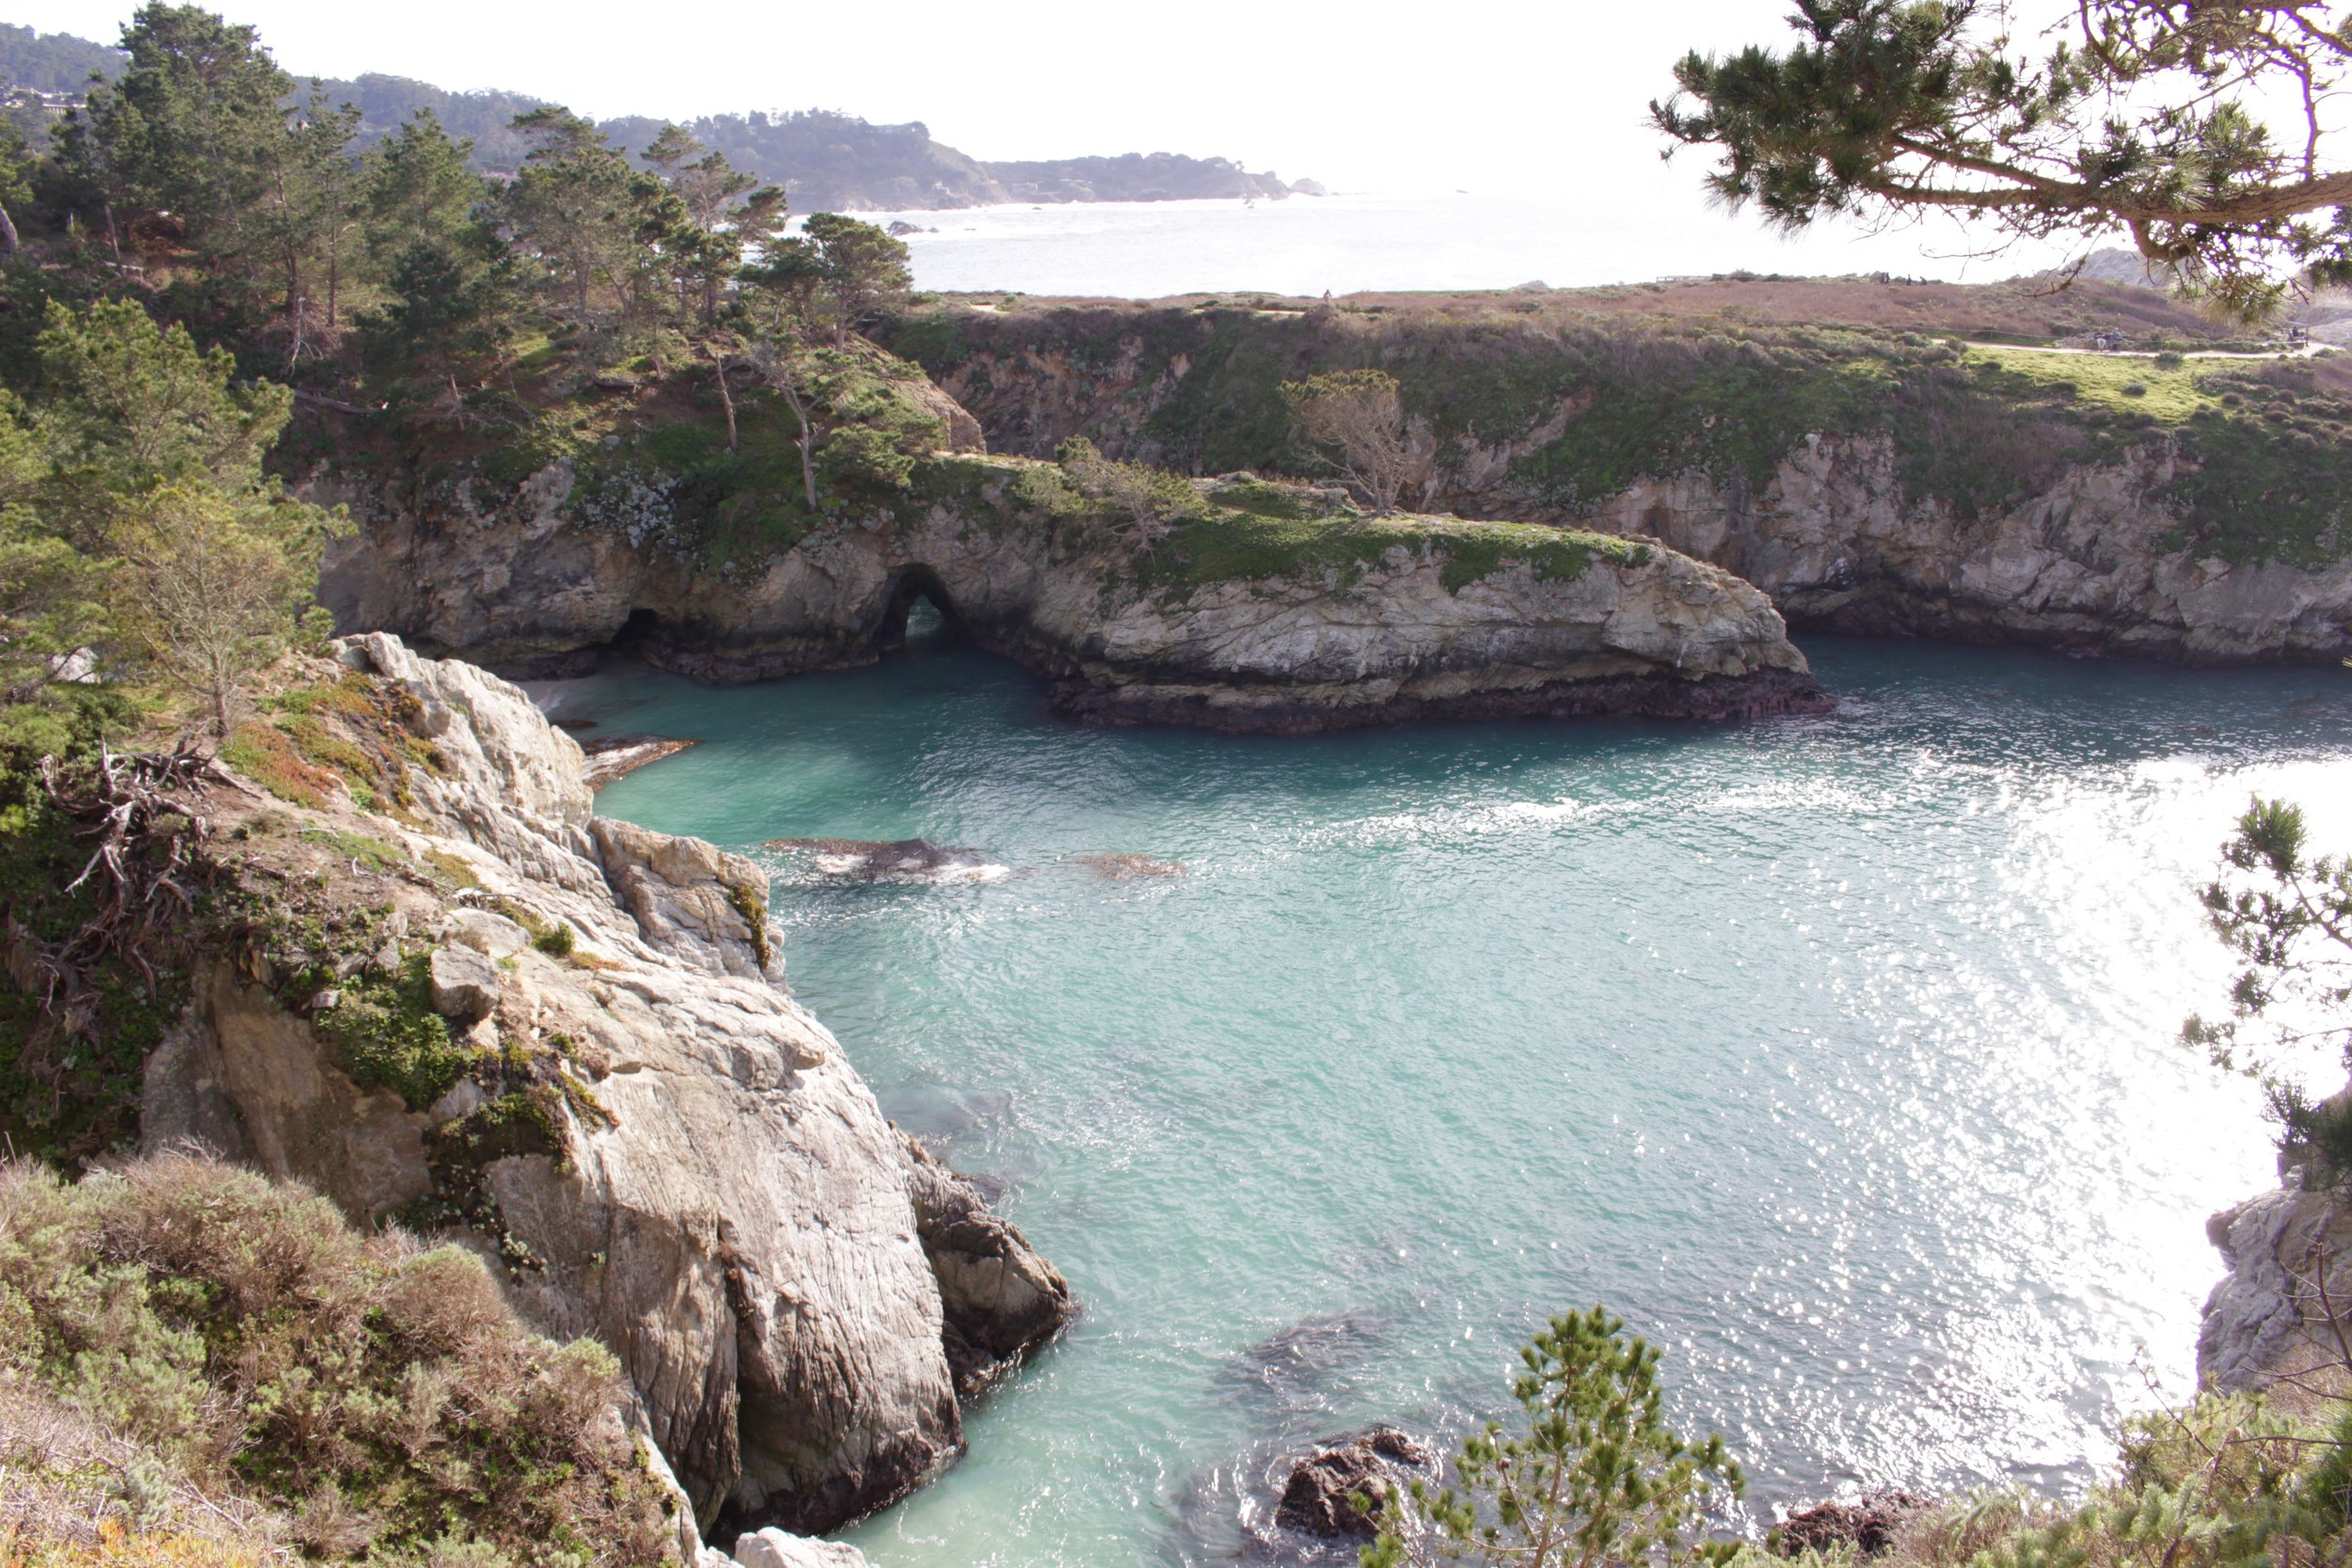 Breathtaking views on our Point Lobos hike.